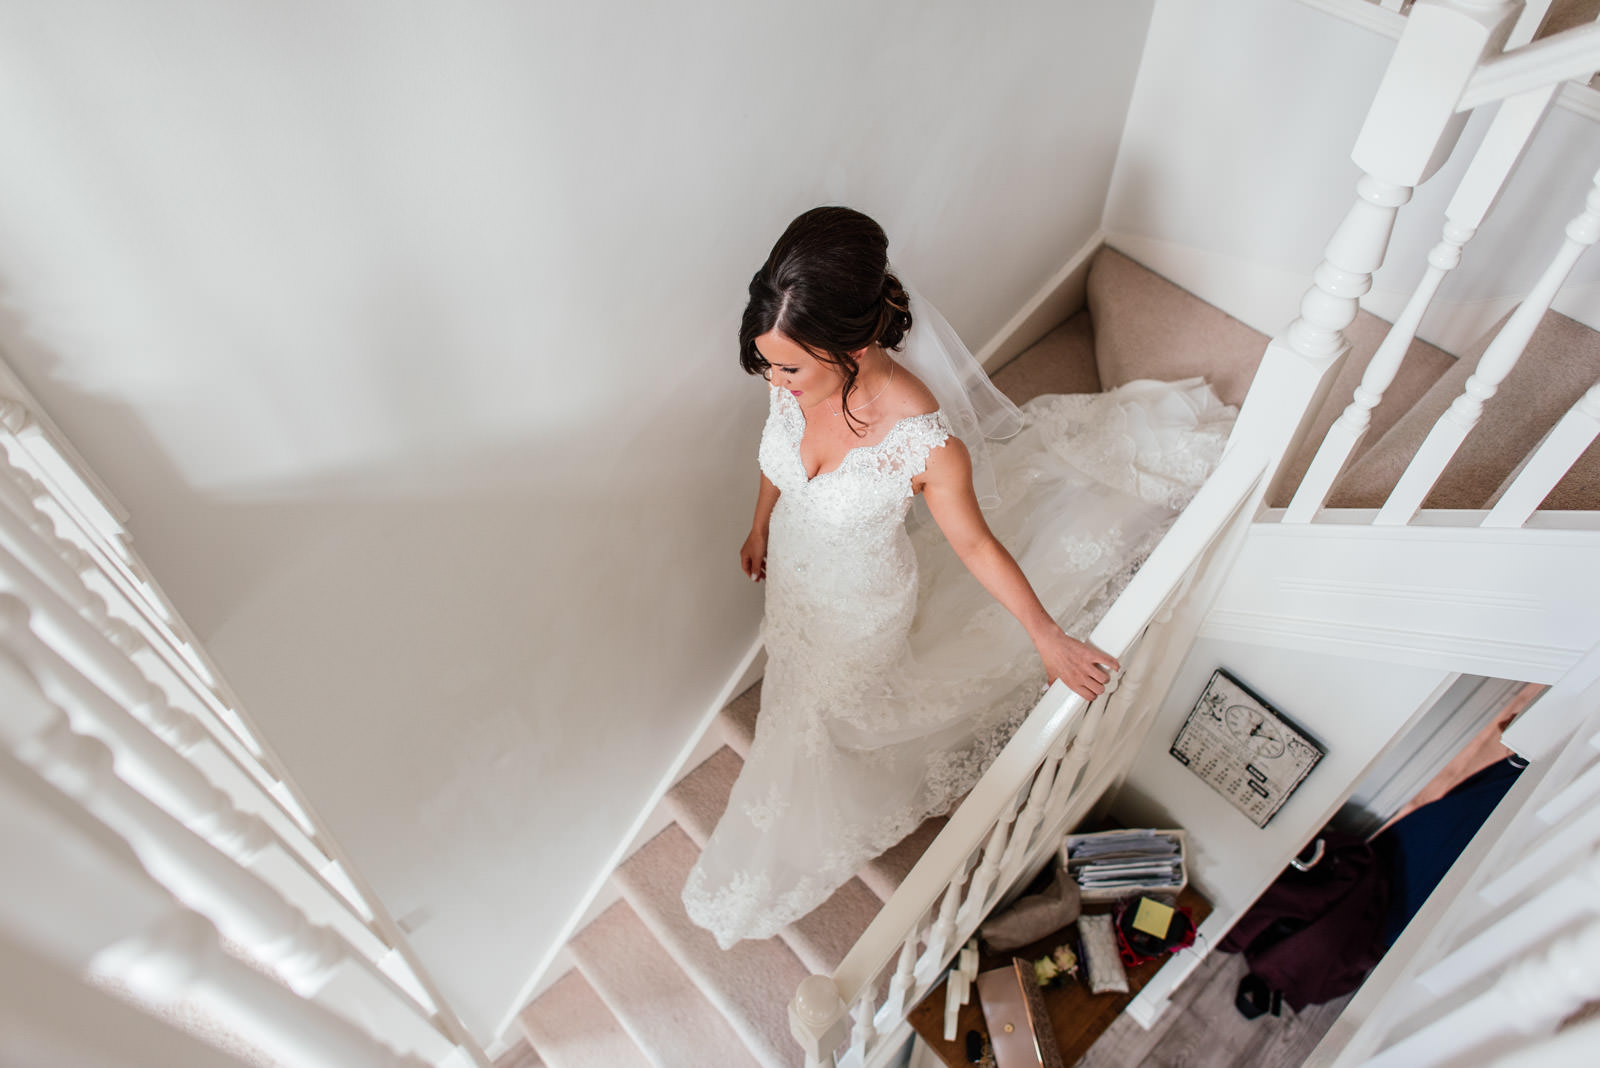 Bride walking down the stairs in wedding dress